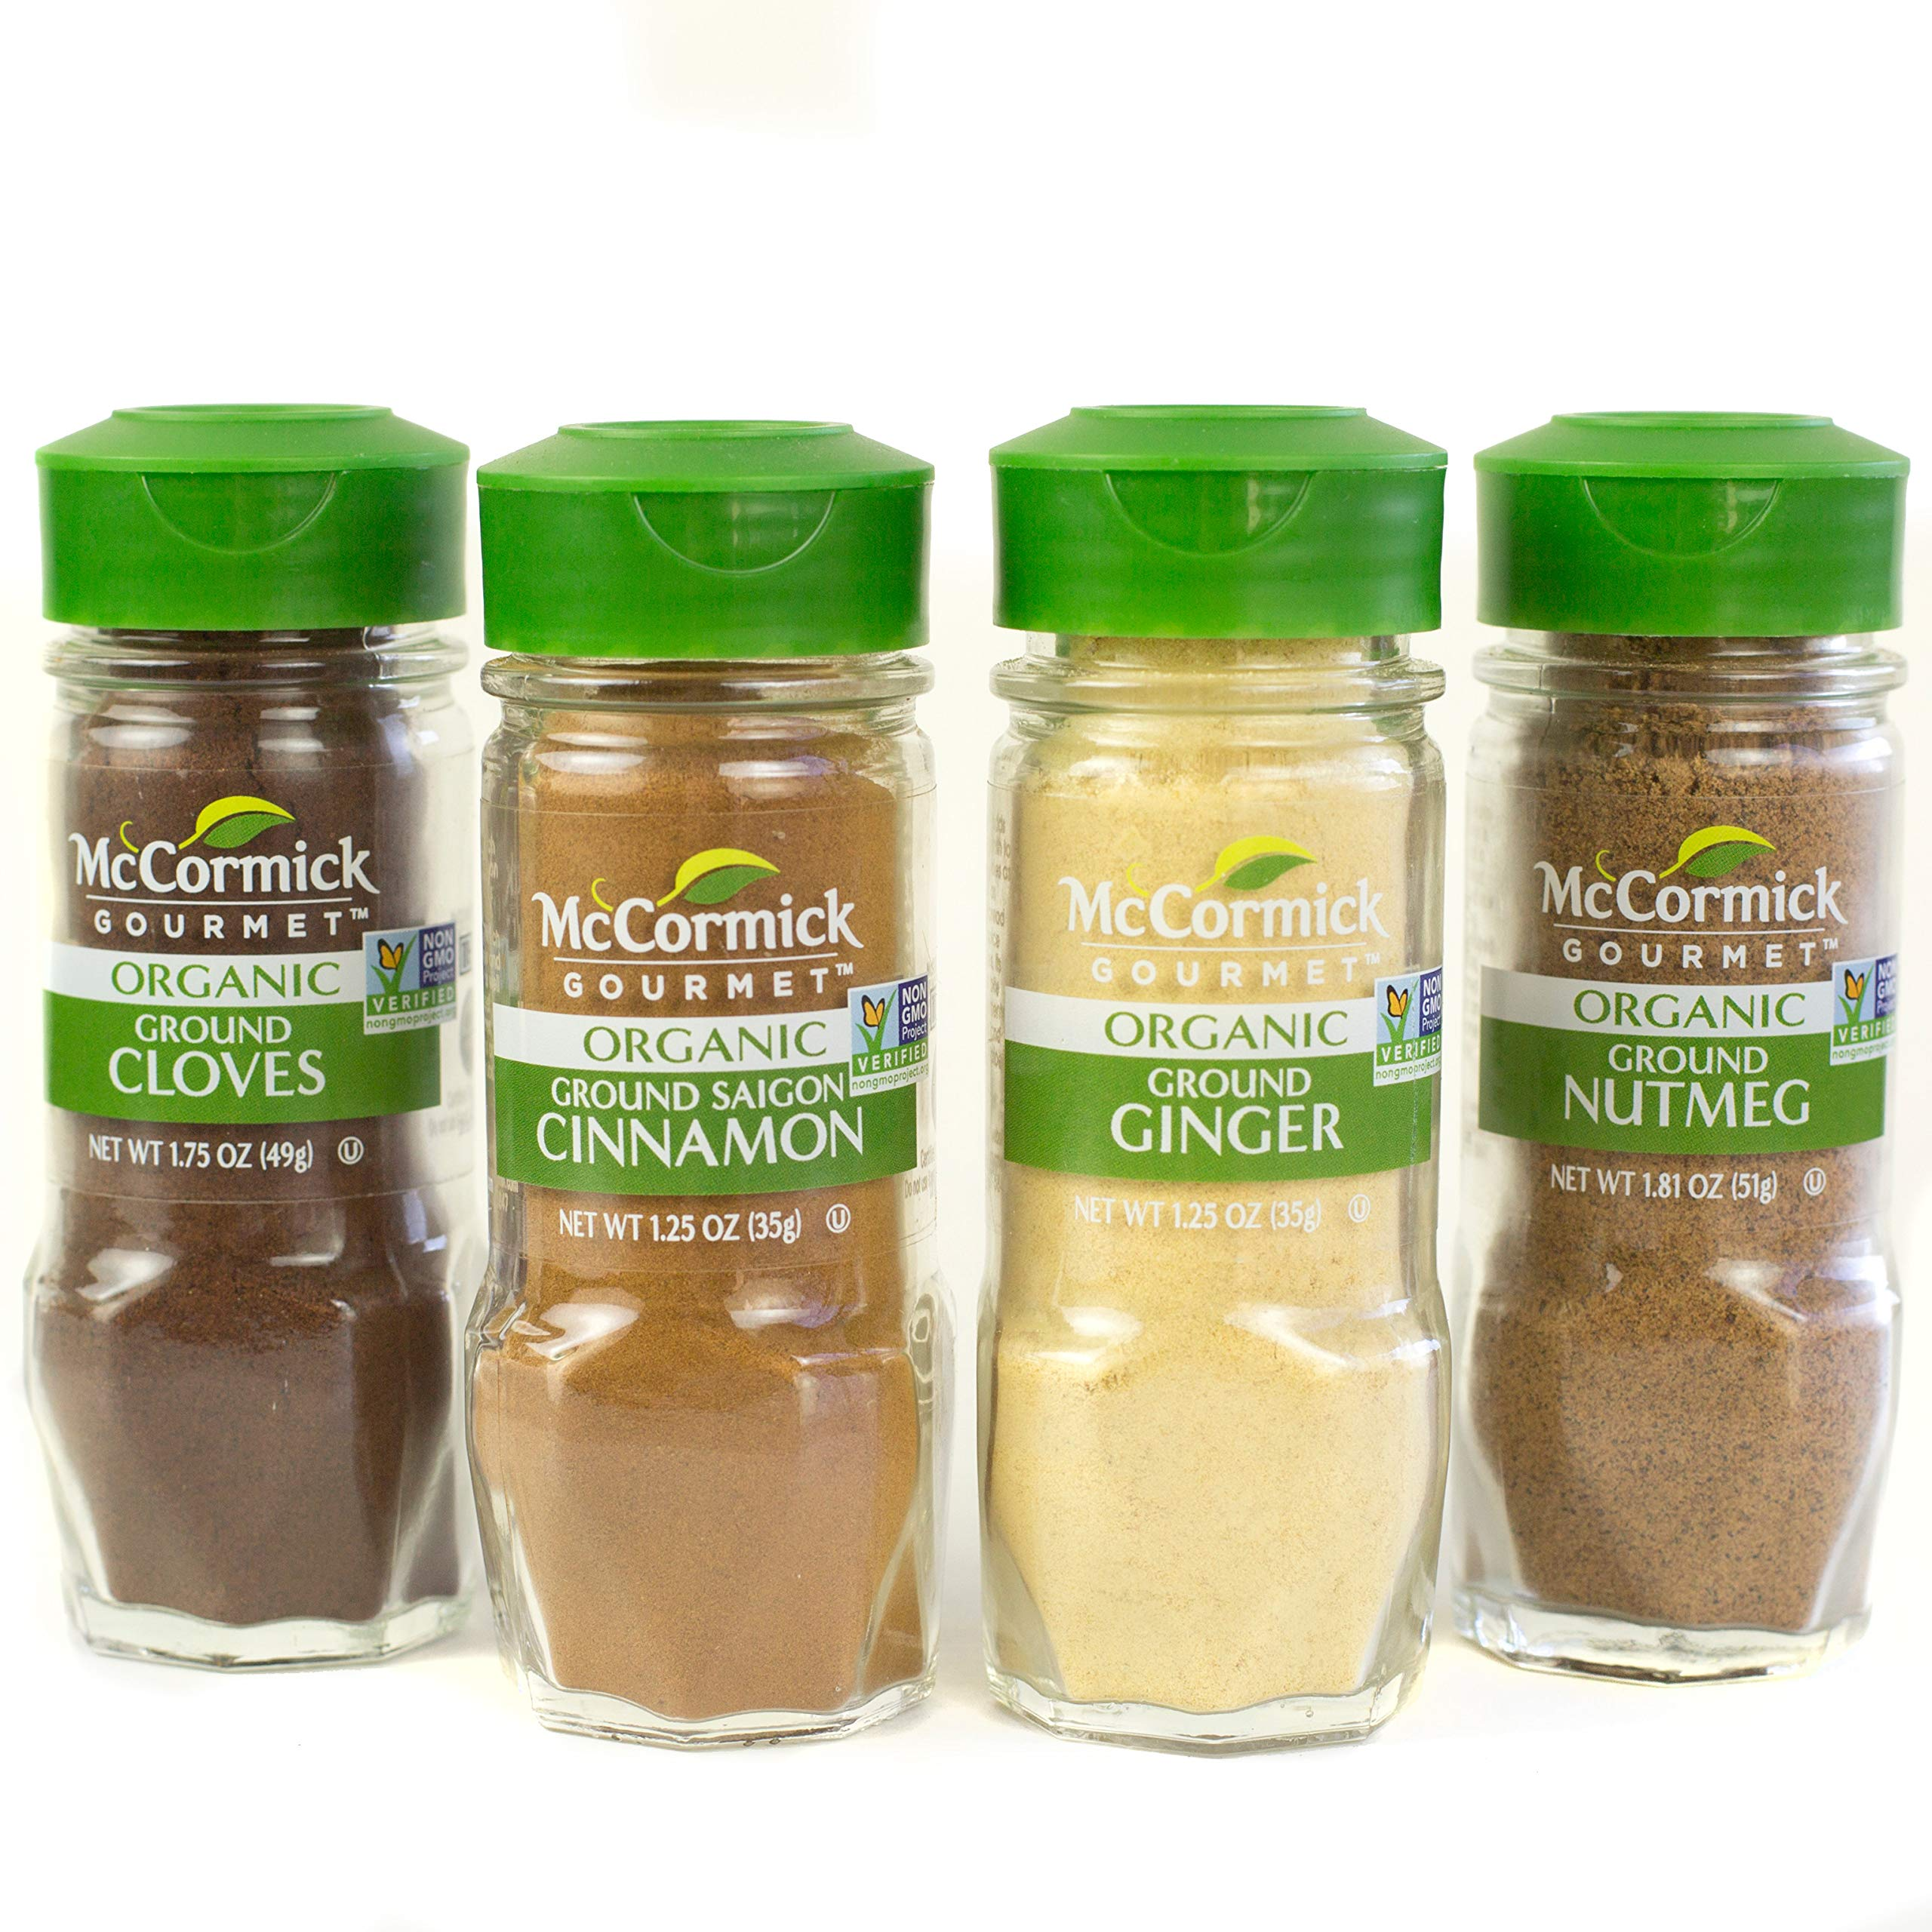 McCormick Gourmet Organic Baking Variety Pack 4 count